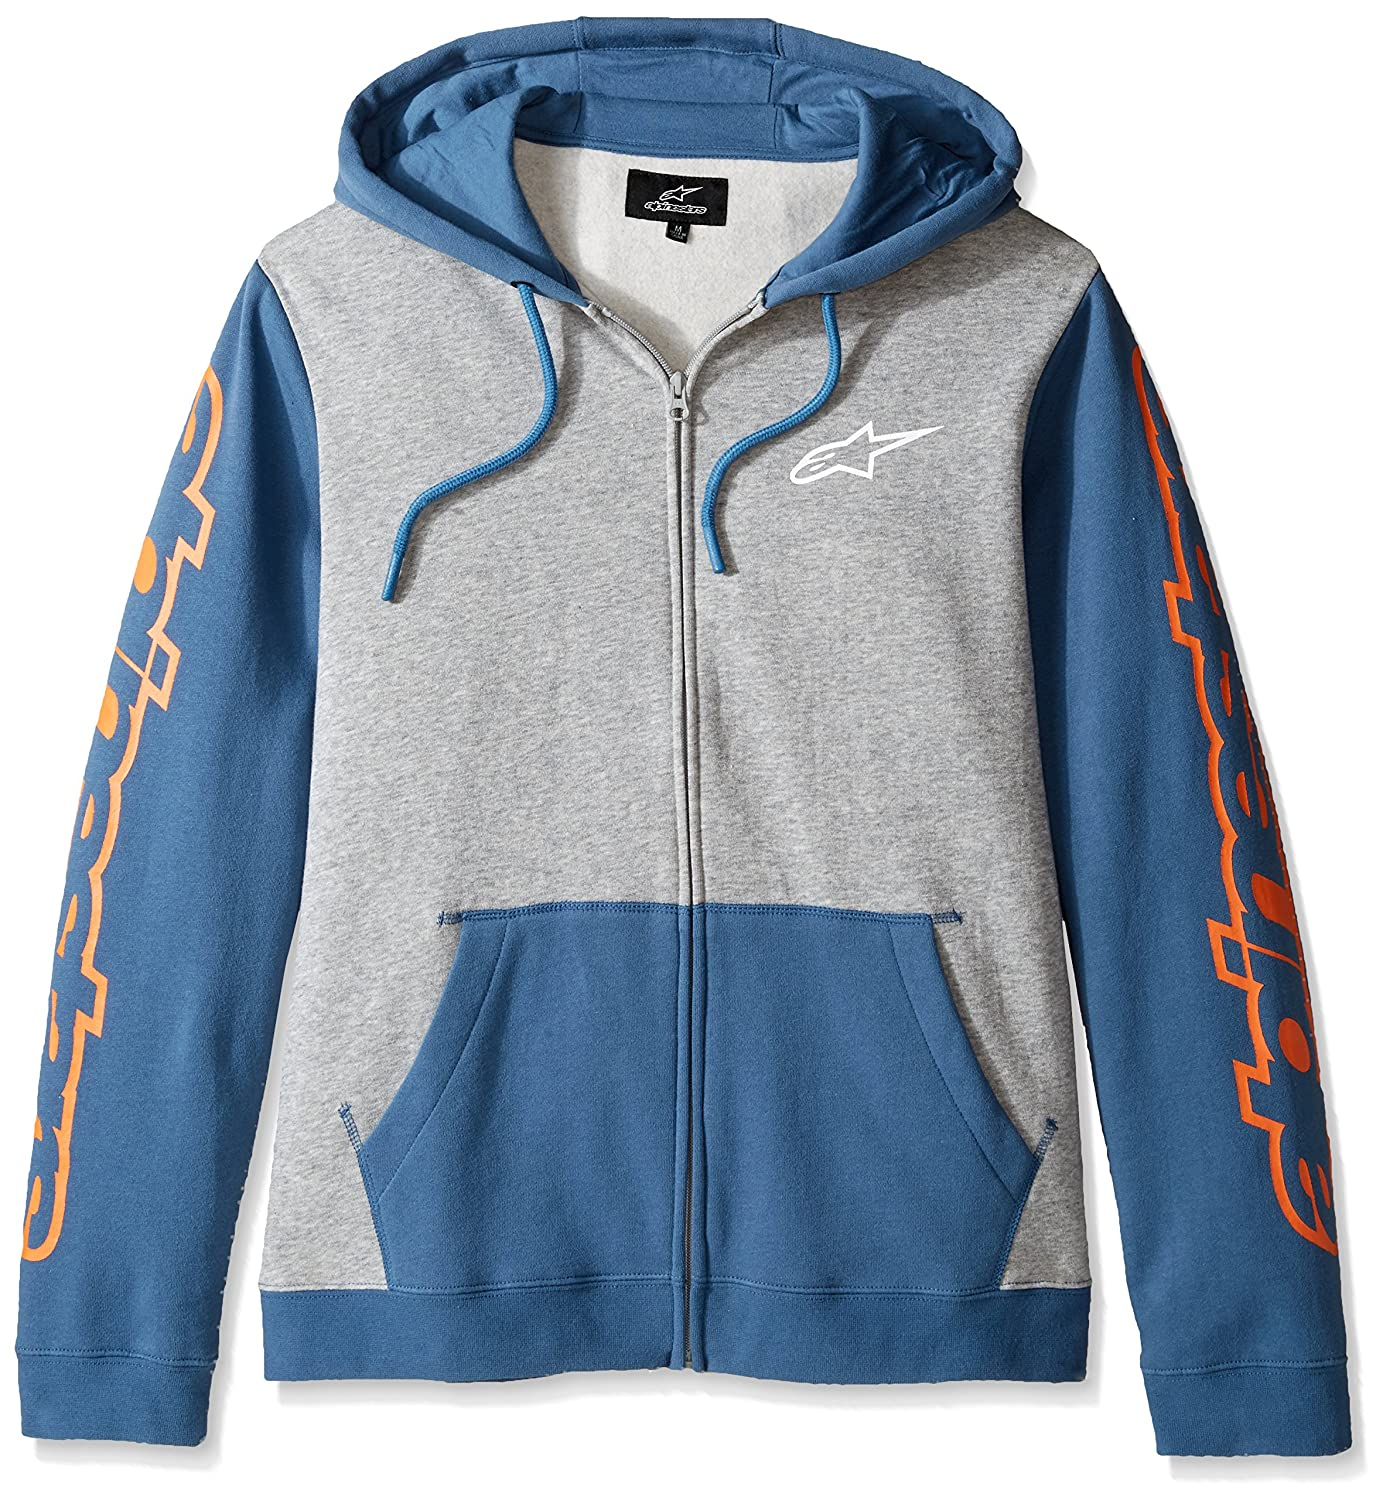 Alpinestars SWEATER メンズ B01M1BEKCR L|Grey Heather/Blue Grey Heather/Blue L